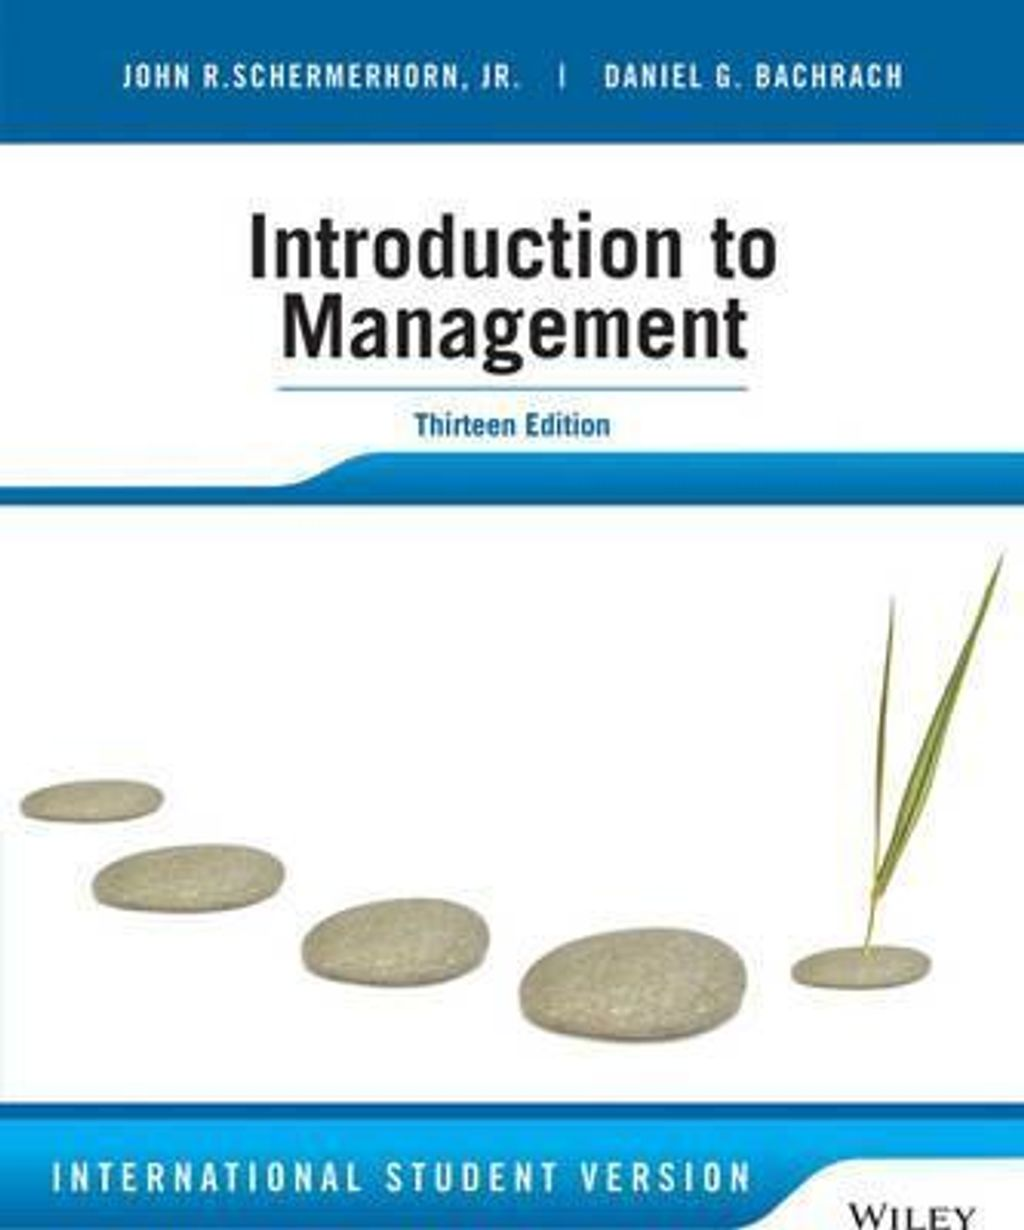 introduction-to-management